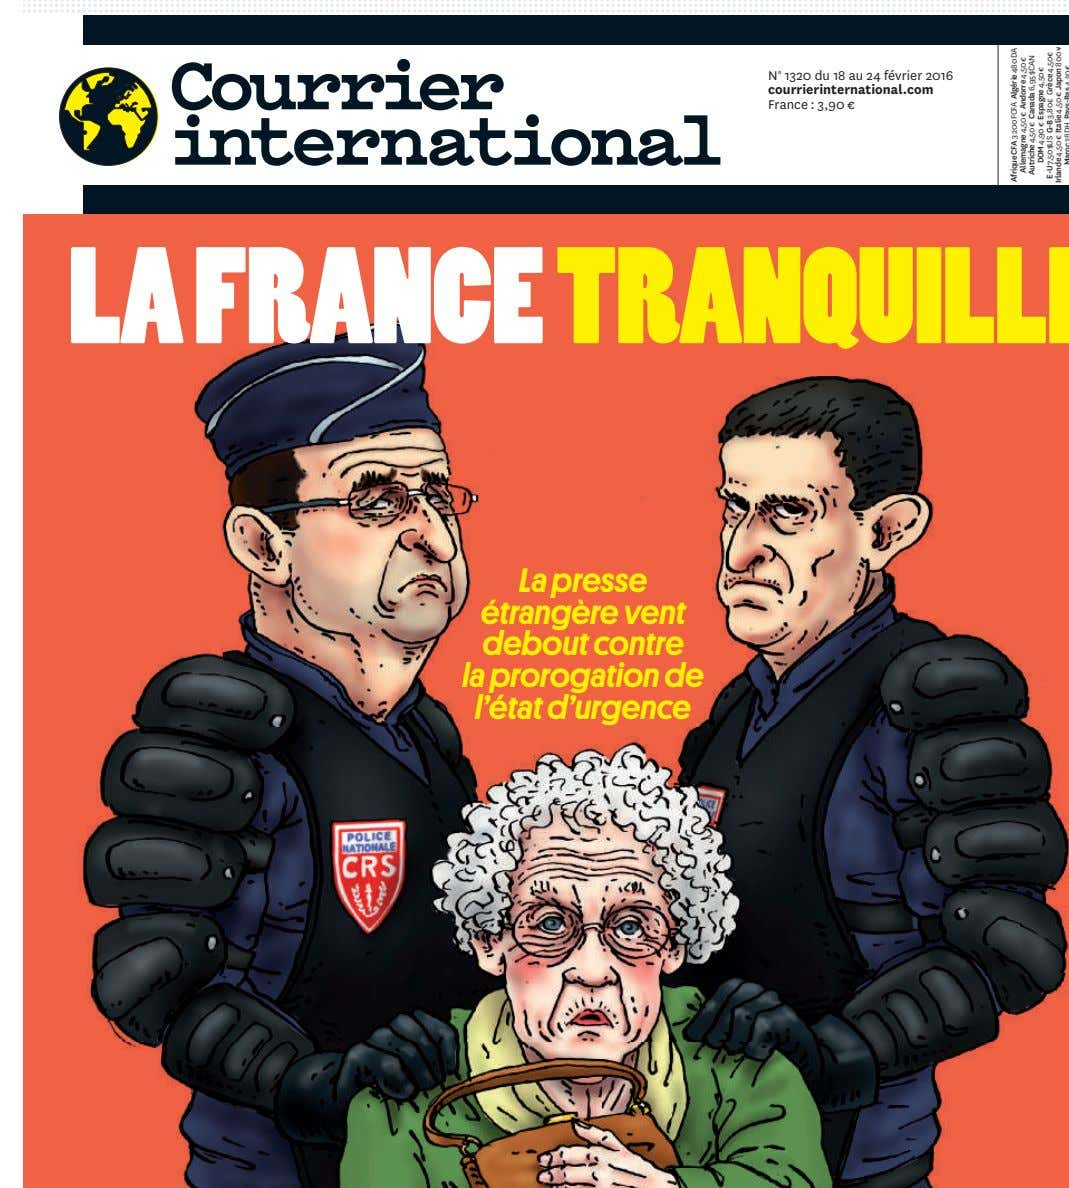 N° 1320 du 18 au 24 février 2016 courrierinternational.com France : 3,90 € LA FRANCE